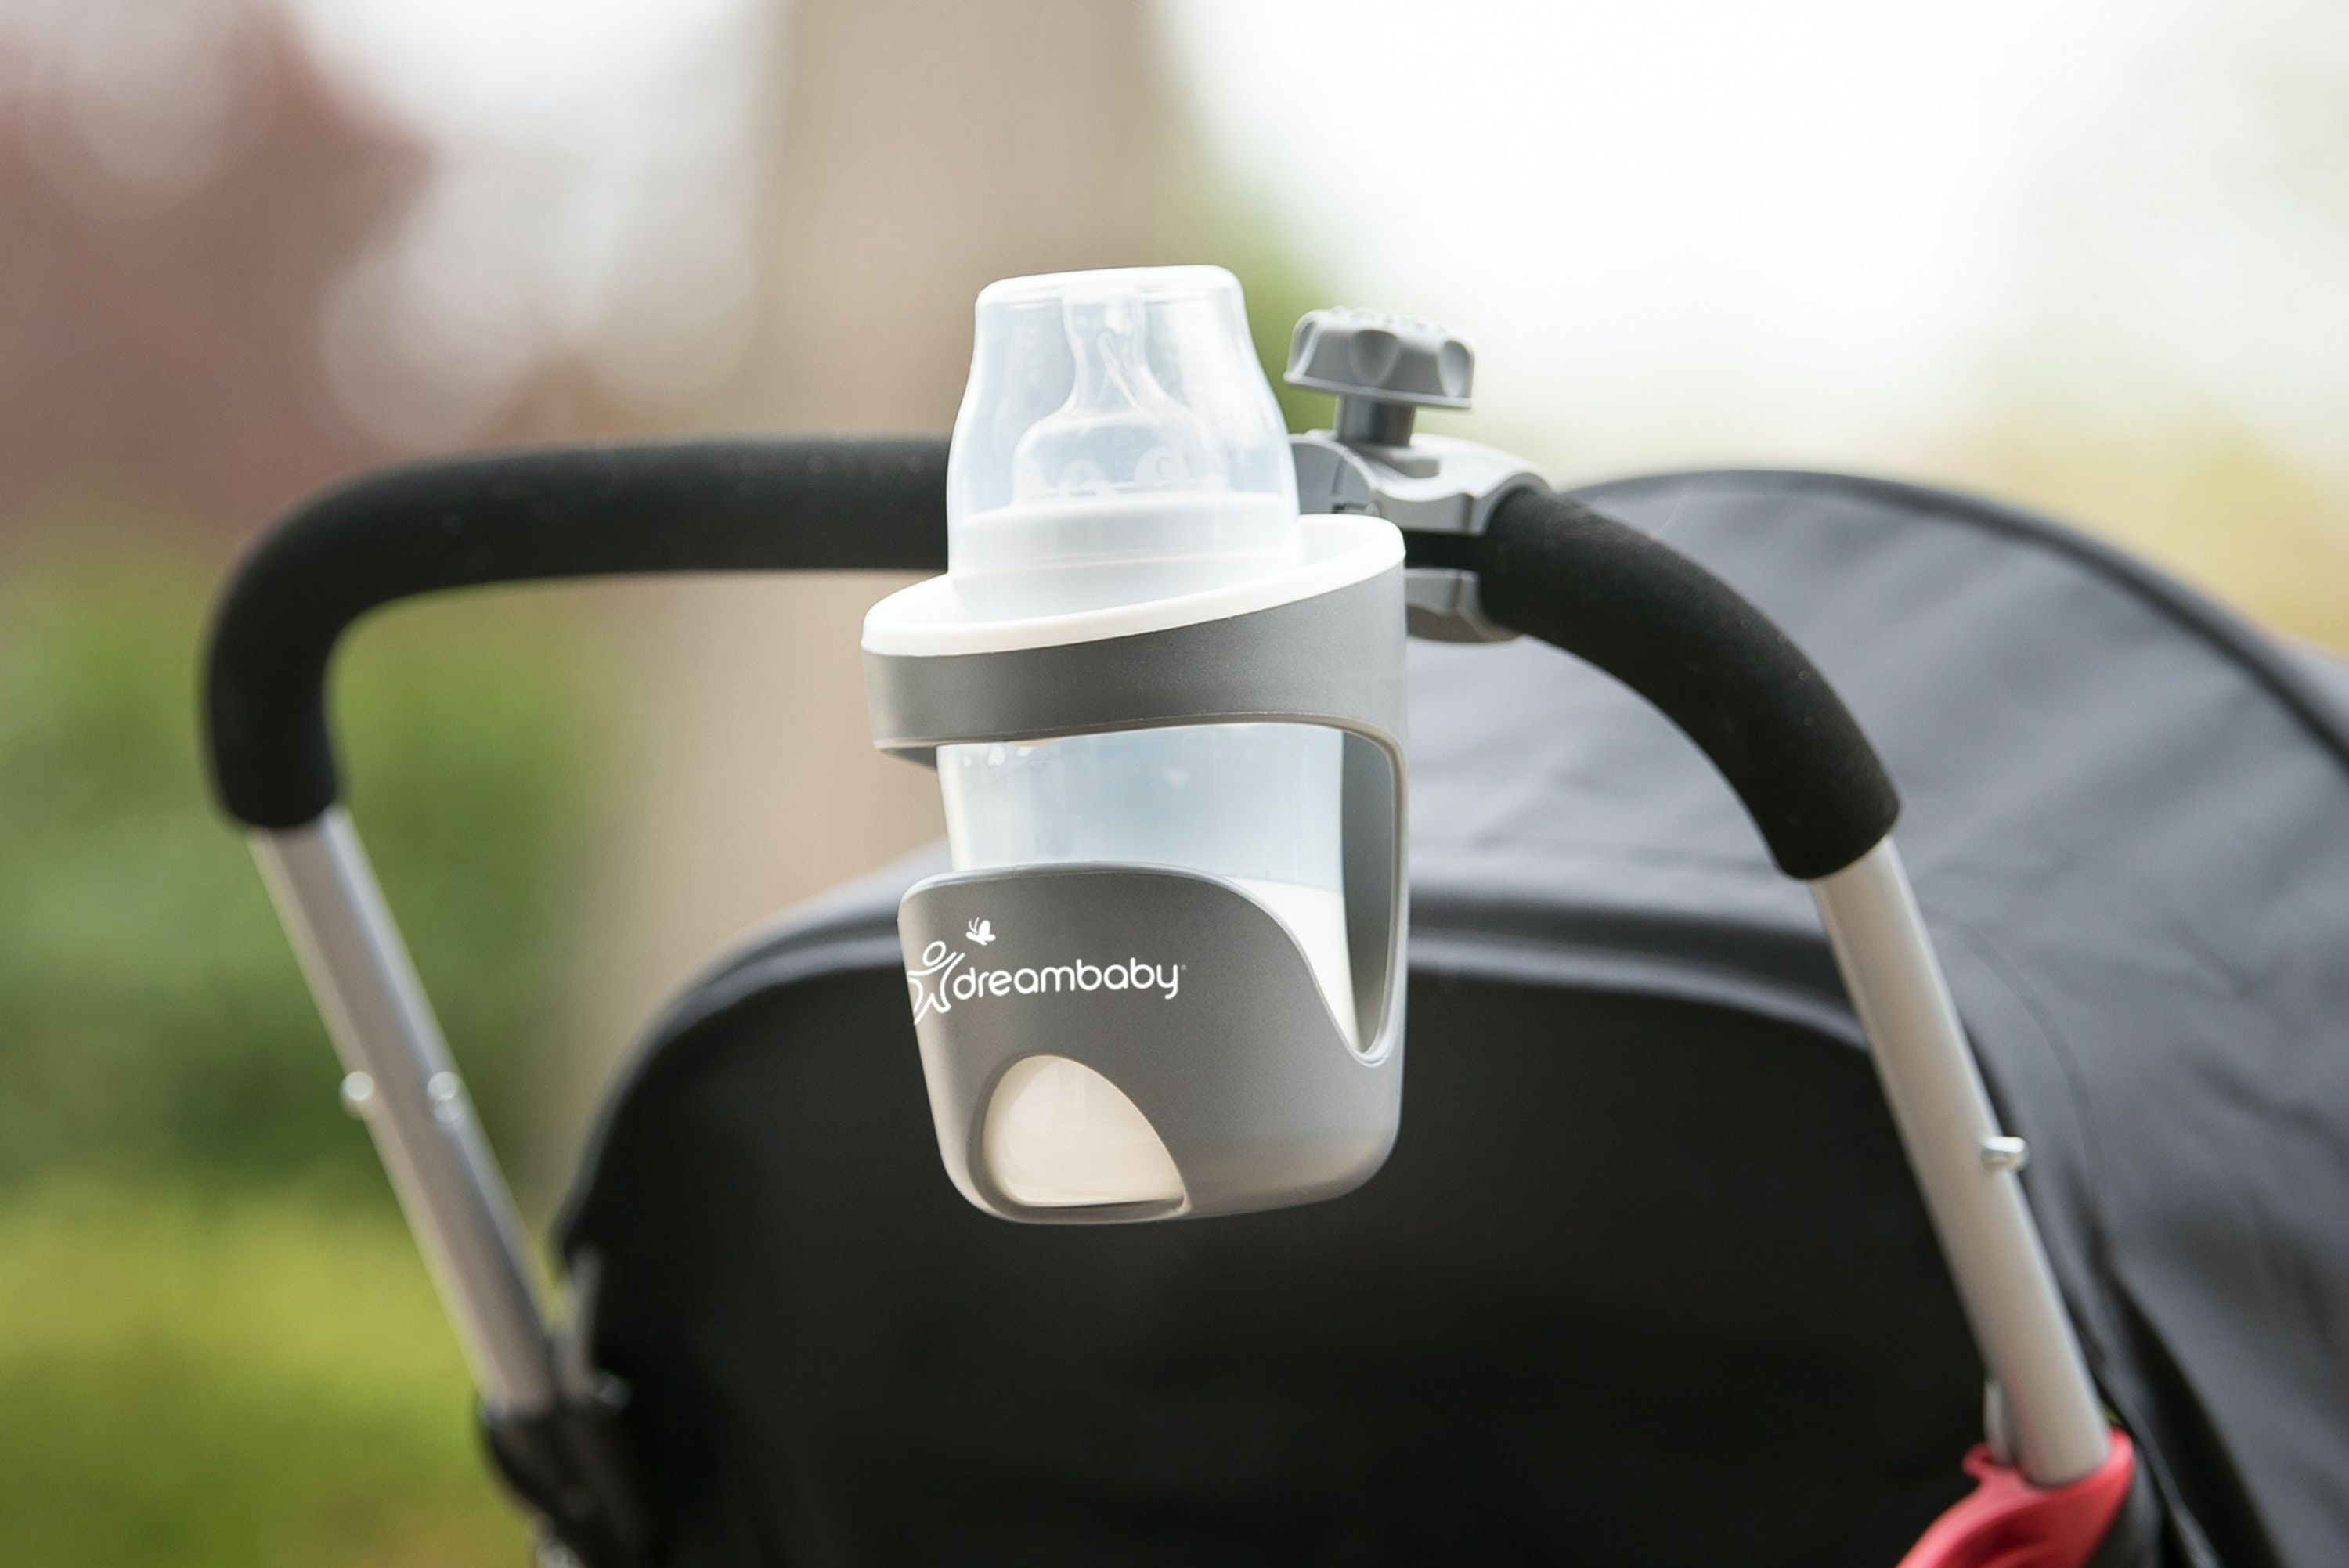 Dreambaby prize pack sweepstakes